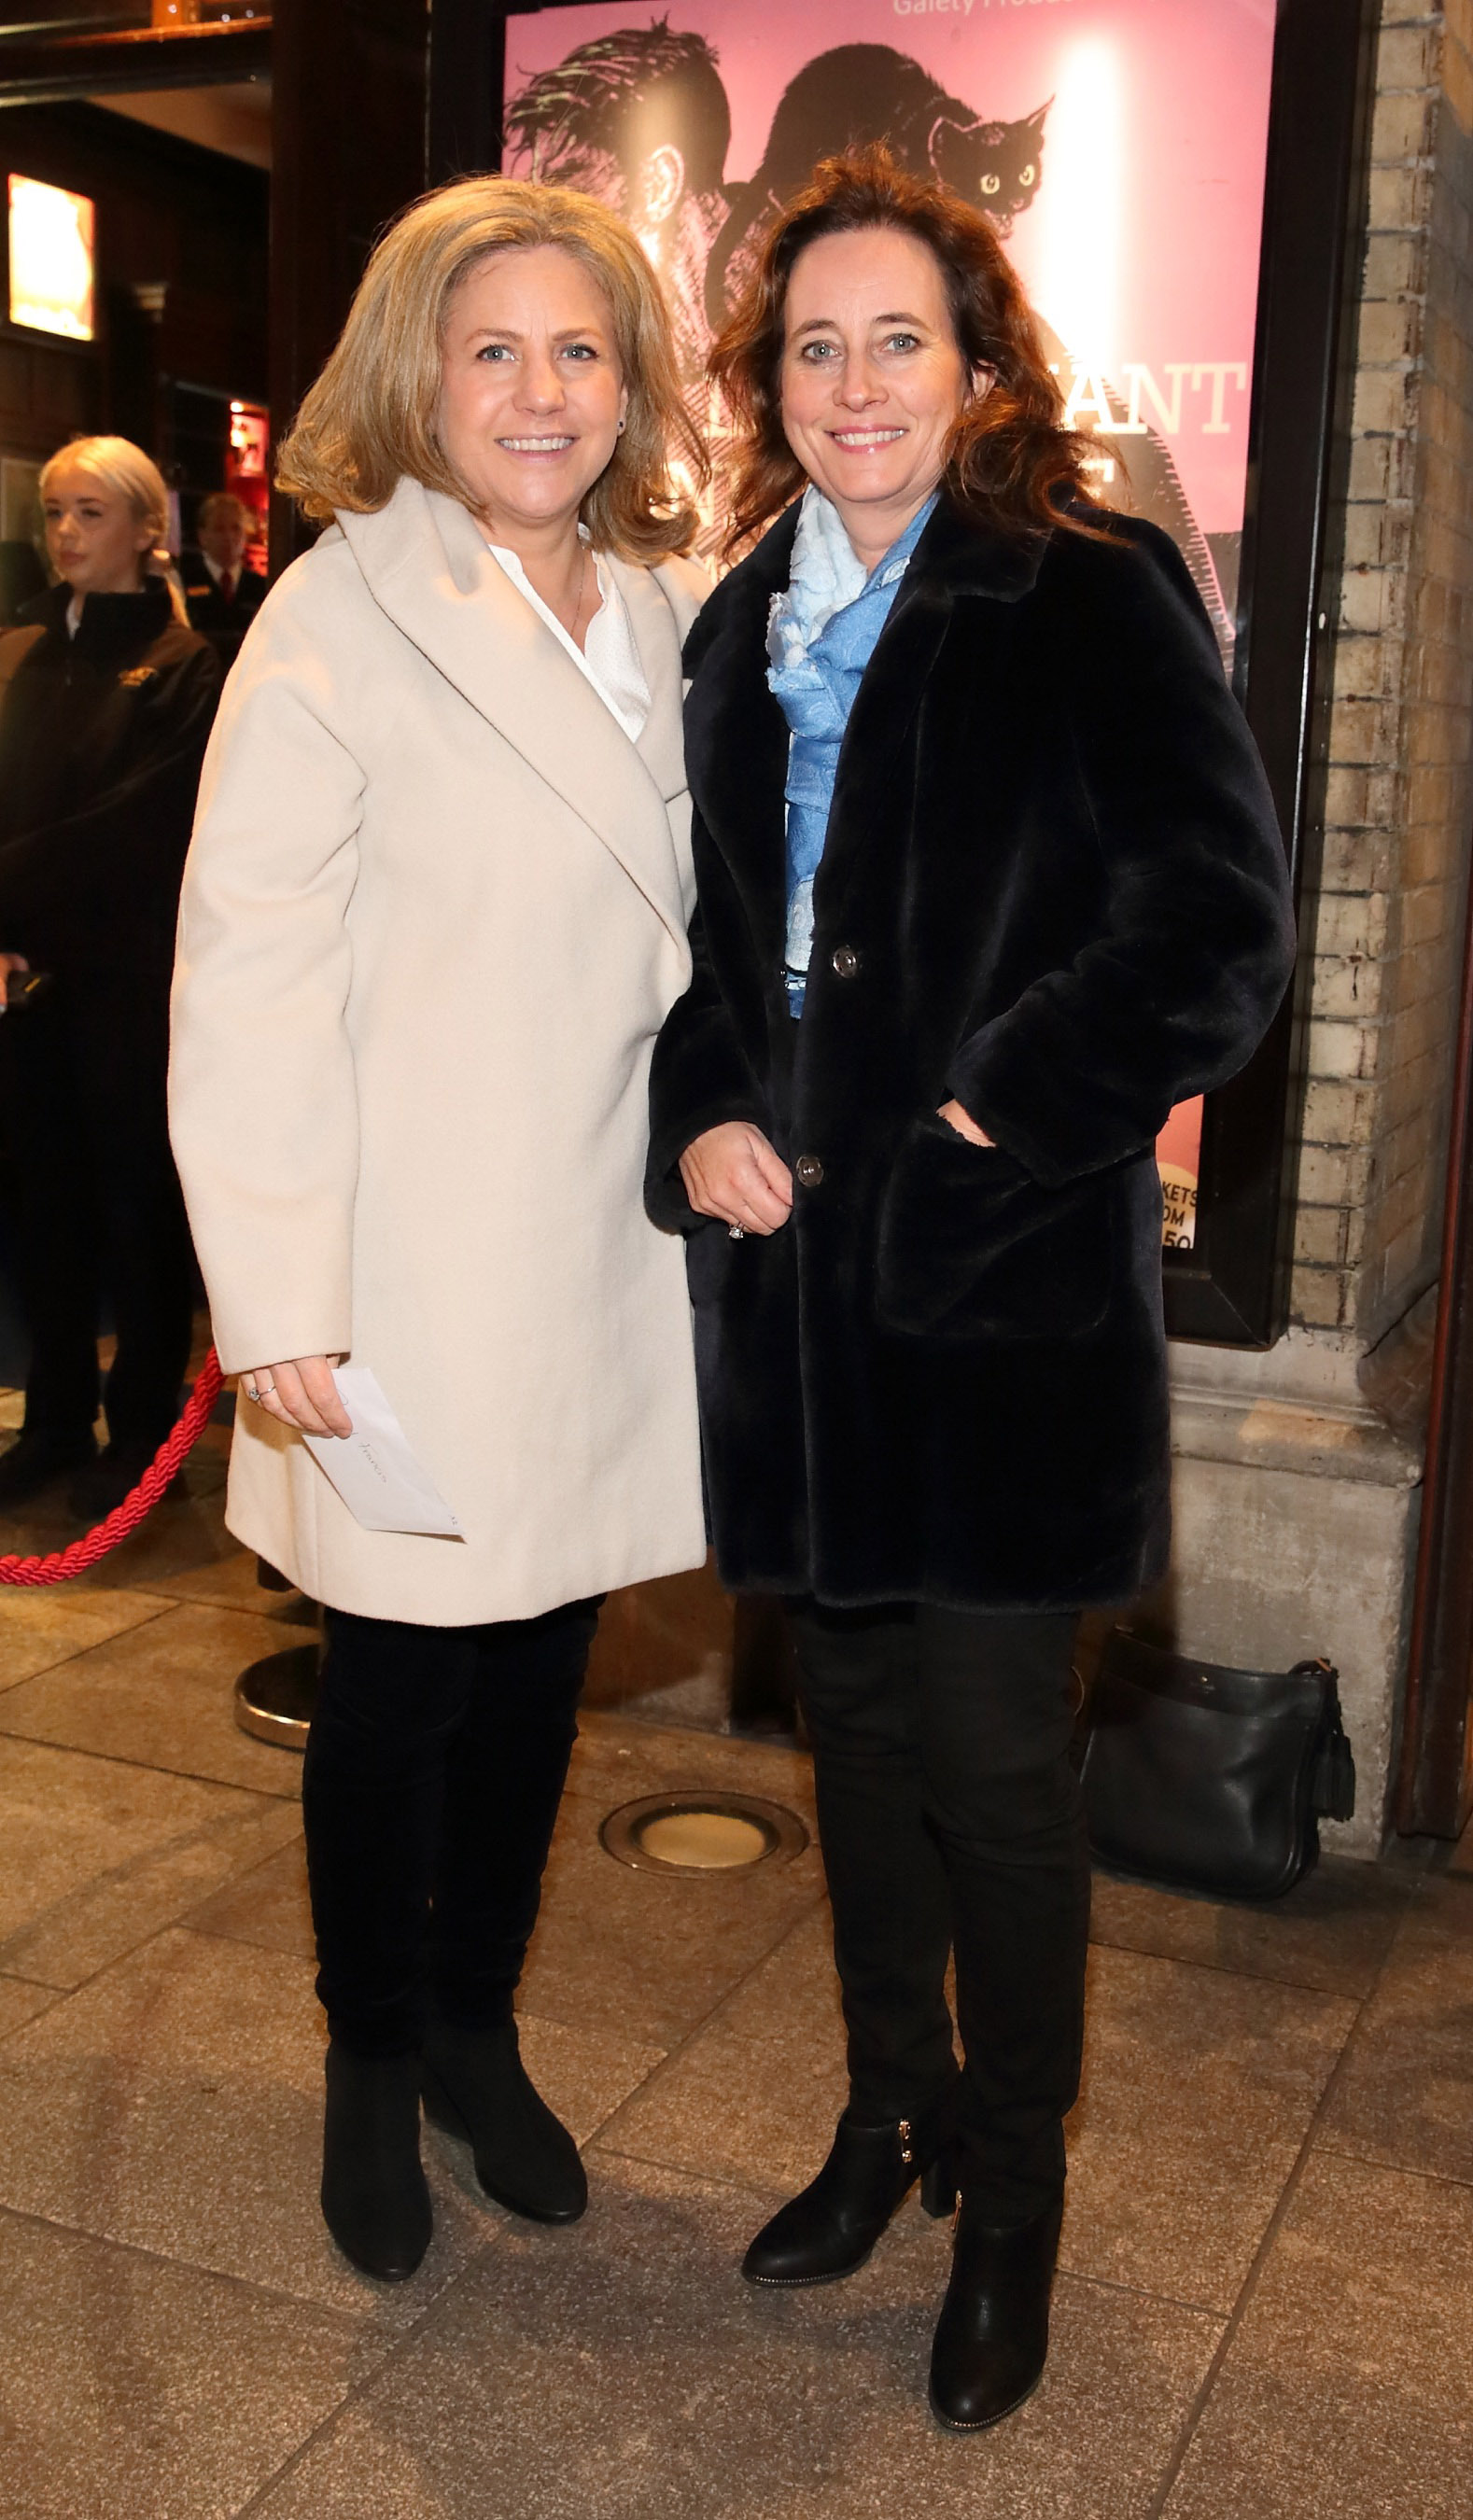 Rachel Frances and Kay Kelly pictured at the opening of the Gaiety Theatre's major new production of Martin McDonagh's 'The Lieutenant of Inishmore', which will run at the Gaiety Theatre until 14th March.